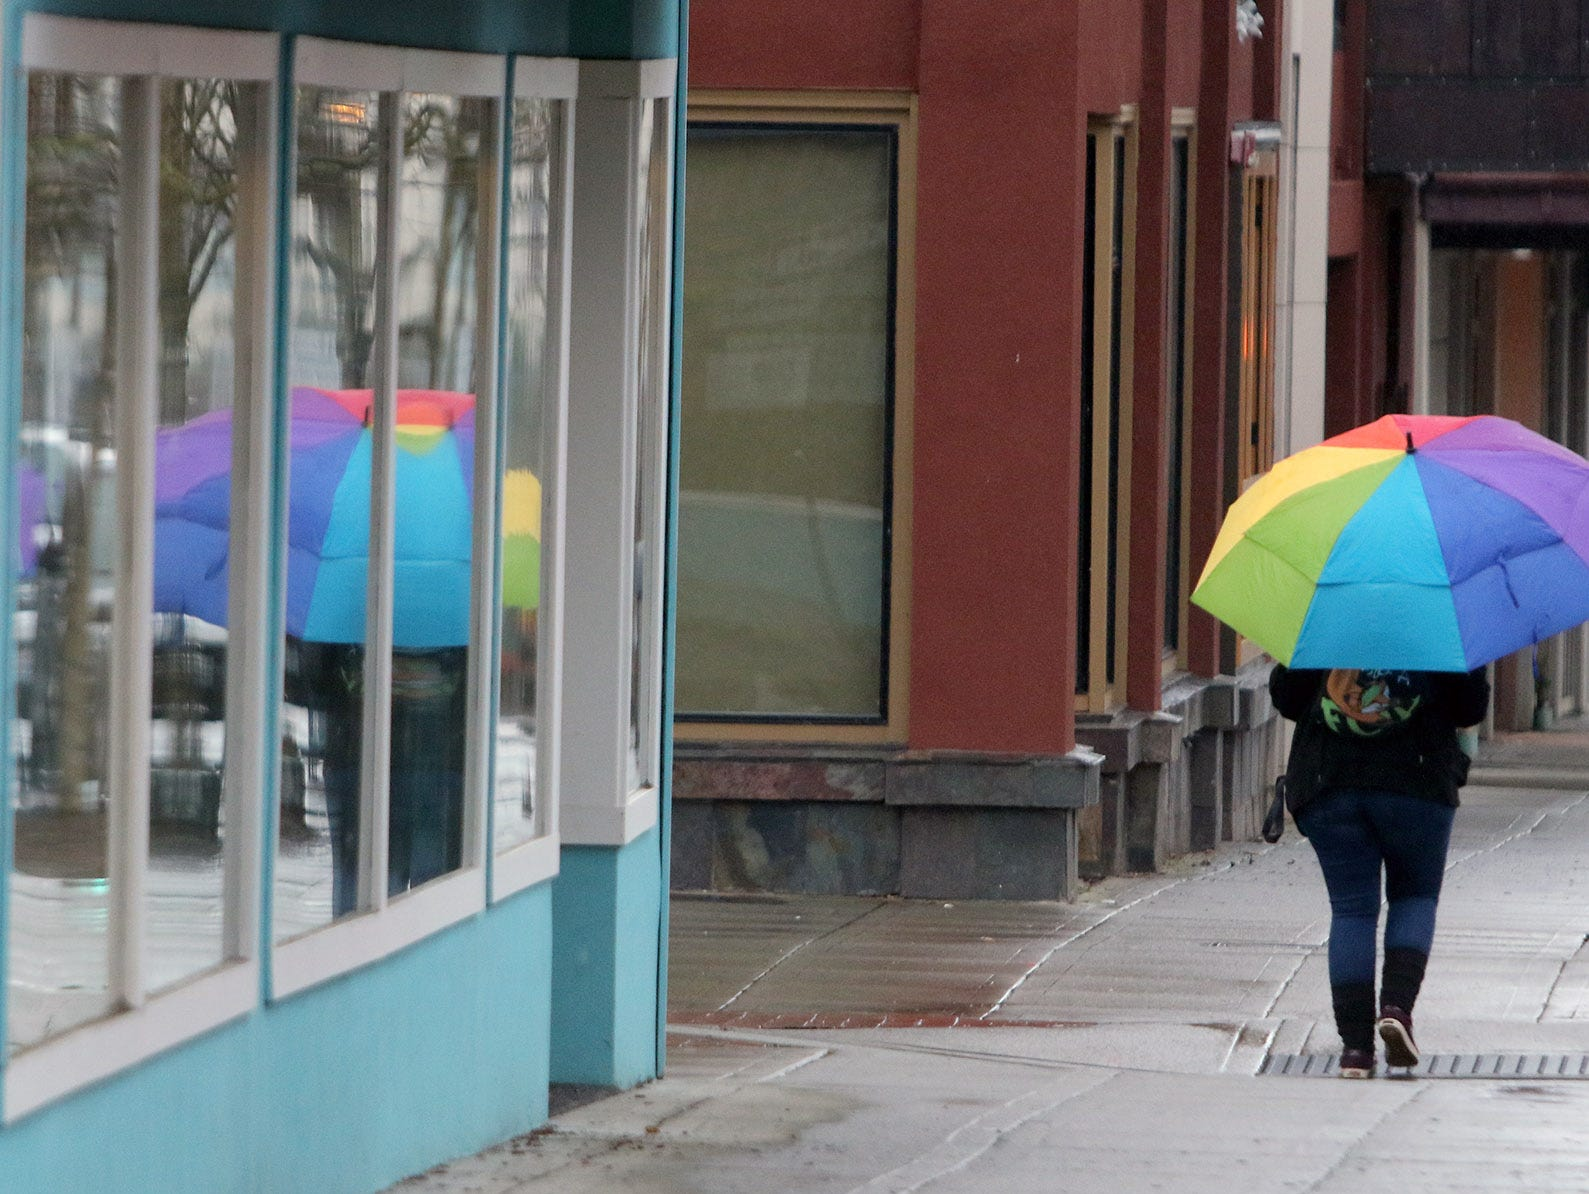 A colorful umbrella is used during an early mornign drizzle along Pacific Ave. in downtown Bremerton on Fridya, December 28, 2018.